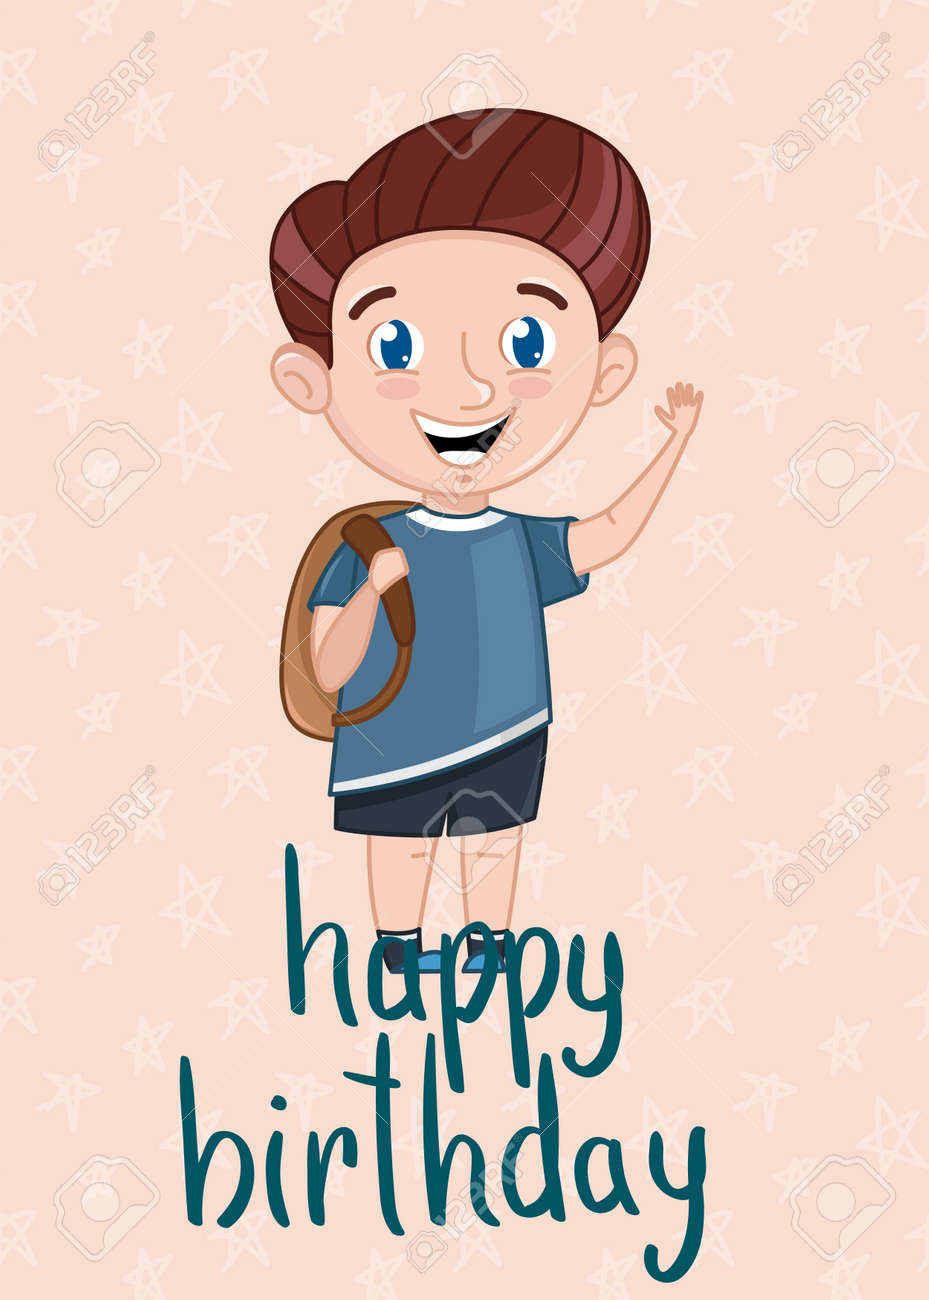 Happy Birthday Kids Postcard Template With Smiling Little Boy. Cute  Greeting Card, Event Invitation